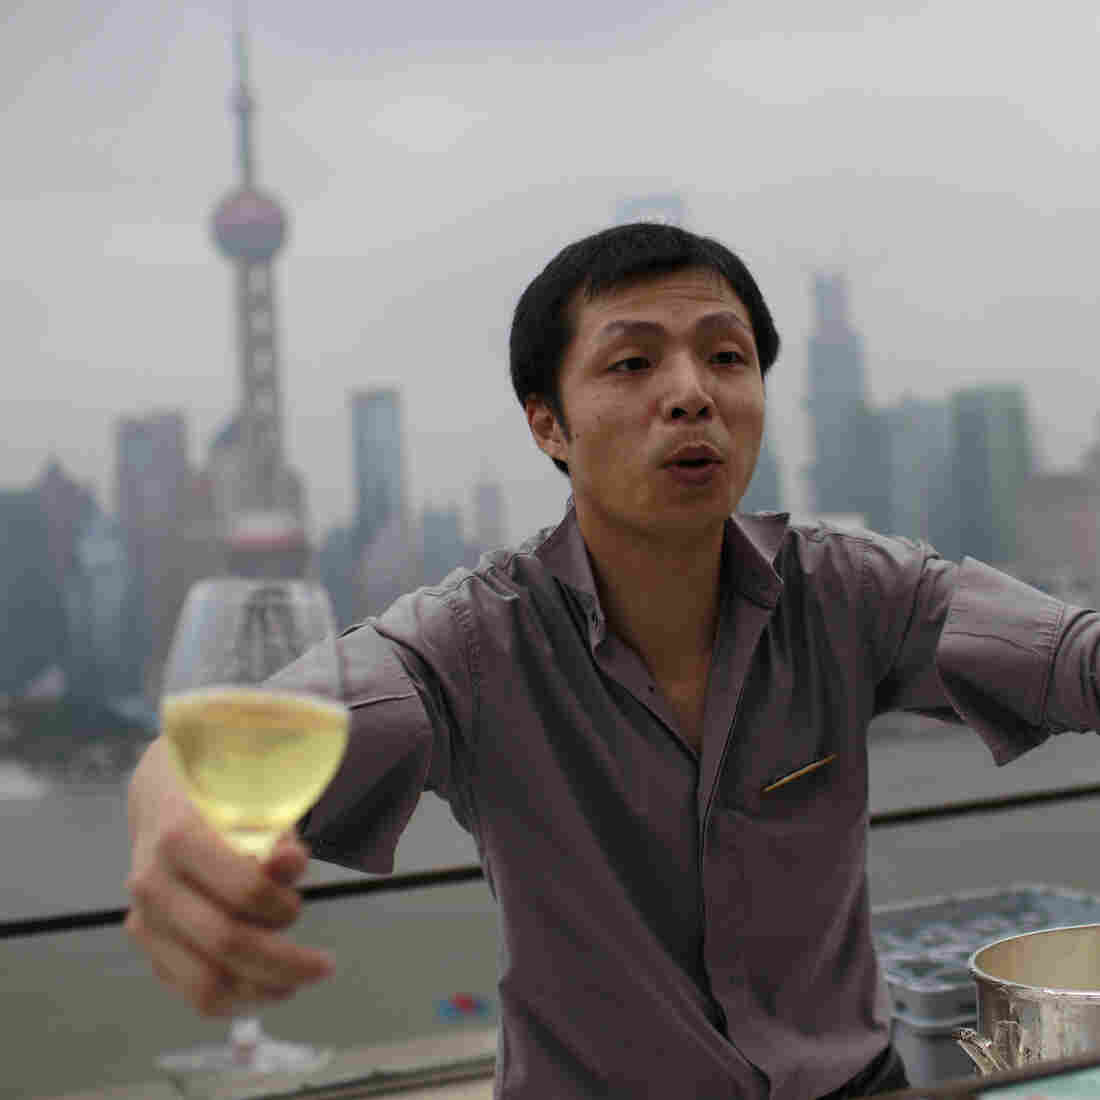 Gatsby-Like Extravagance And Wealth ... In Communist China